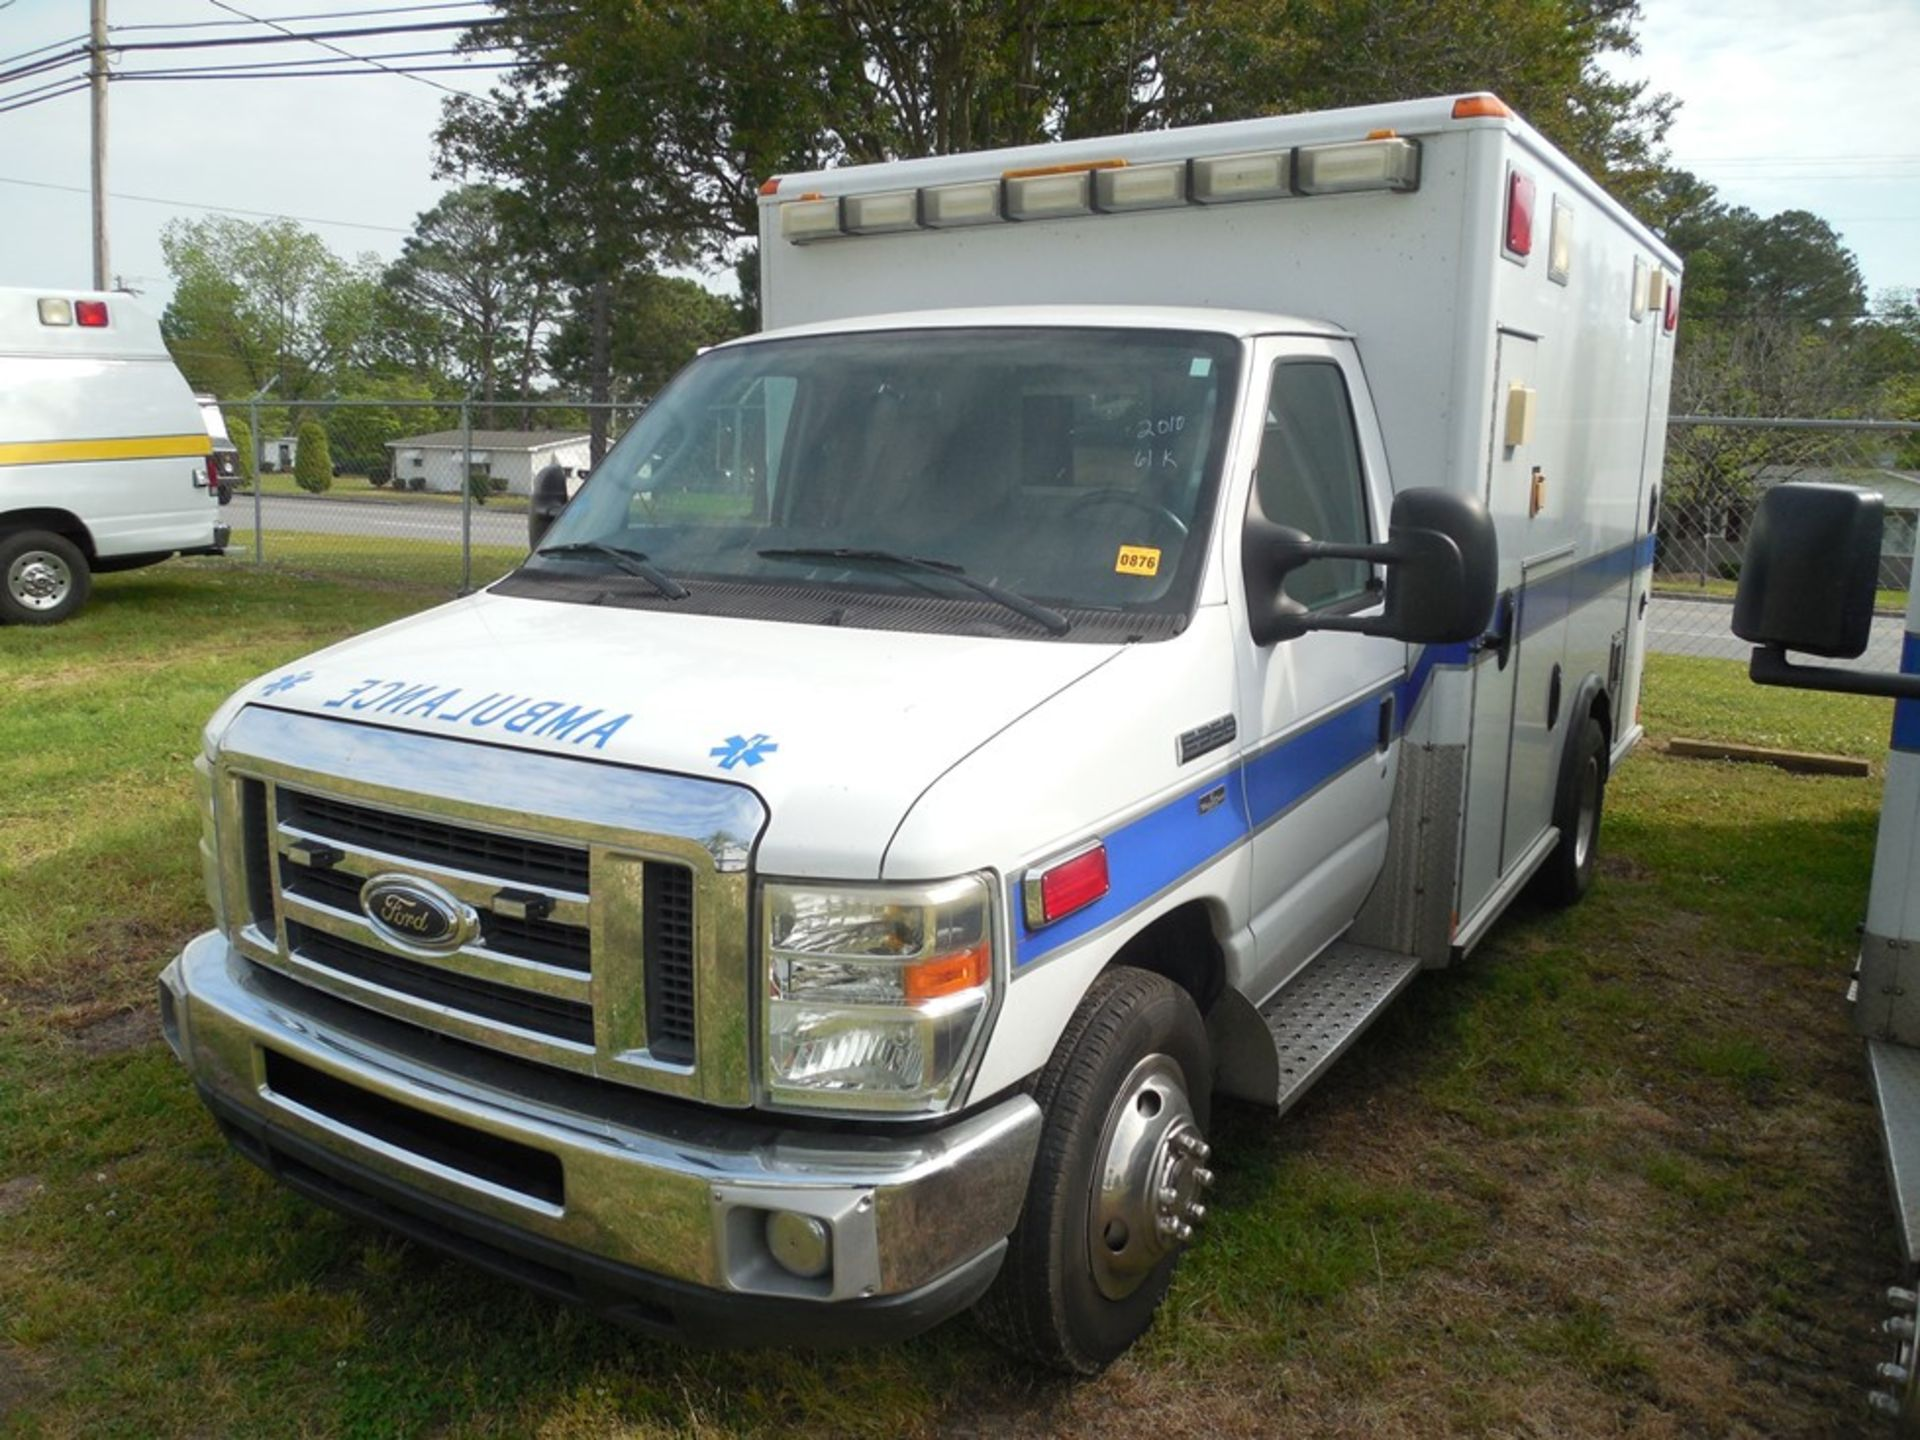 2010 Ford E350 Wheel Coach ambulance, dsl, 61,572 miles, vin# 1FDWE3FP2ADA14523 - Image 2 of 8